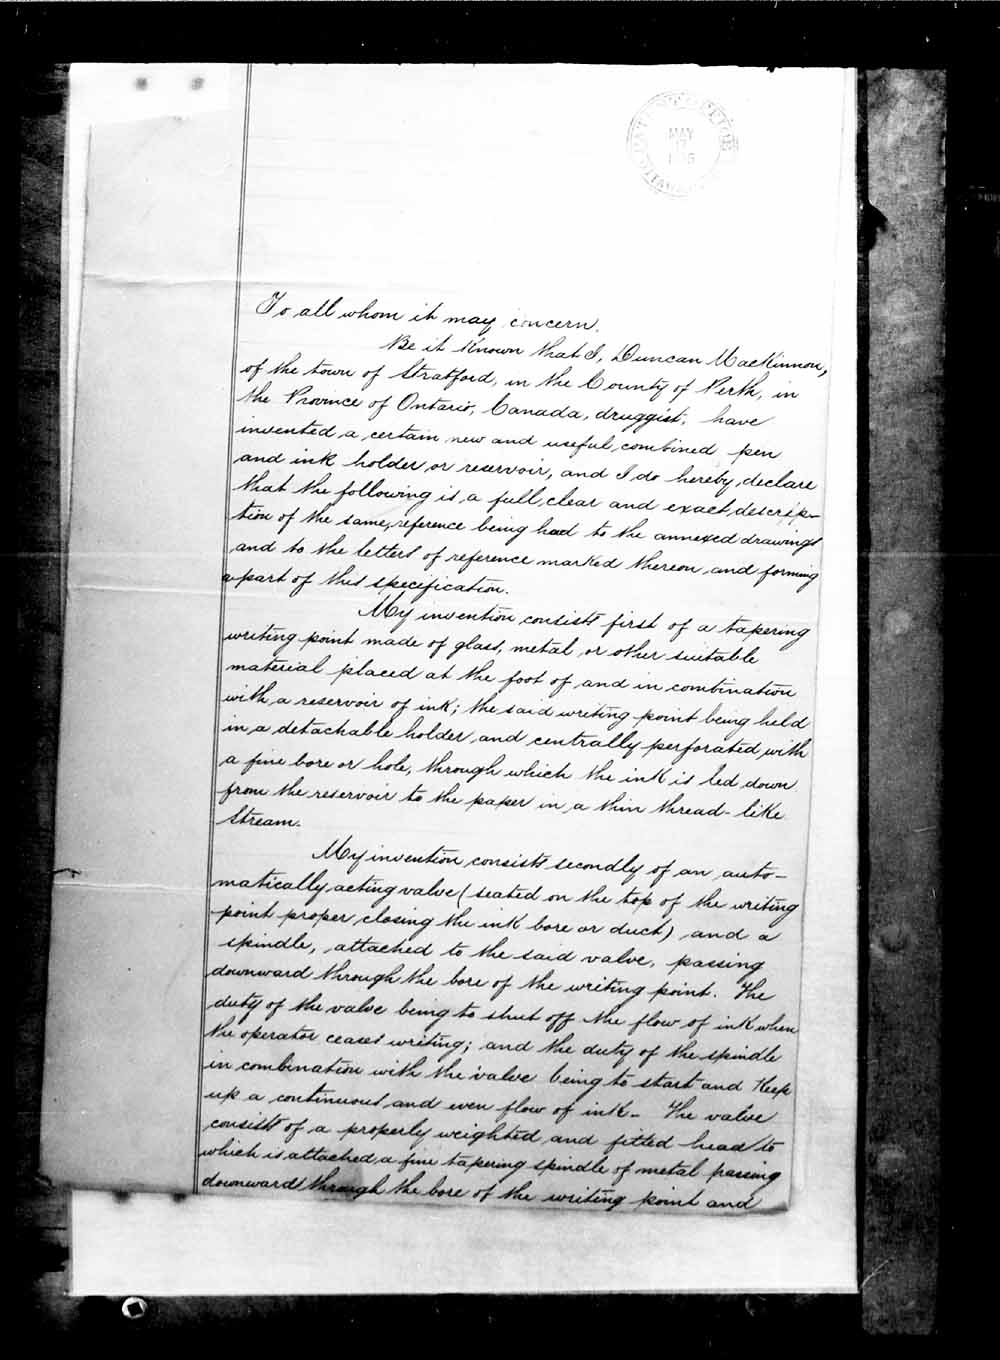 Digitized page of Canadian Patents, 1869-1919 for Image No.: e003263085